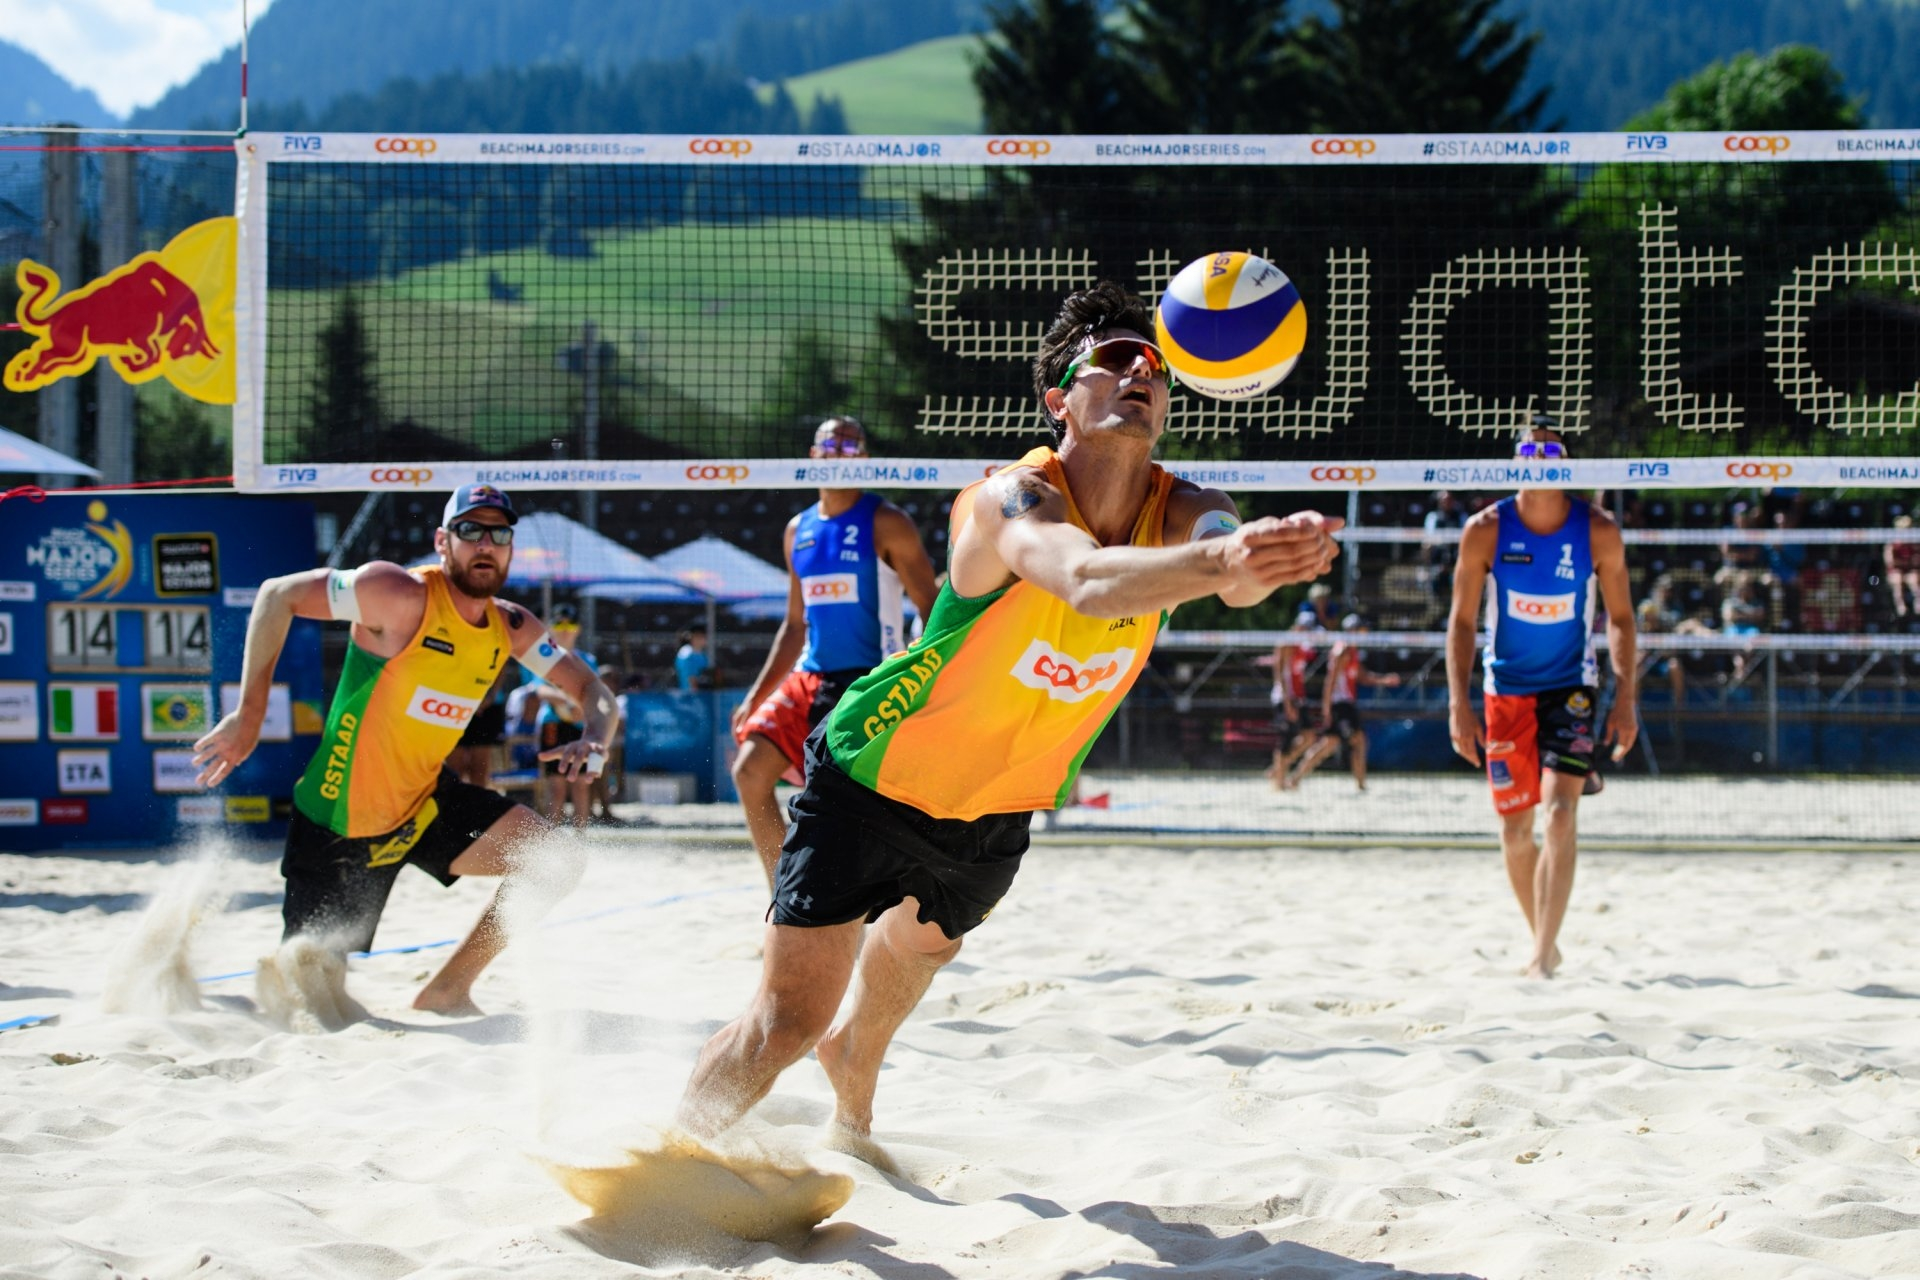 Brazilians Alison and Andre will try to bounce back against the Latvians